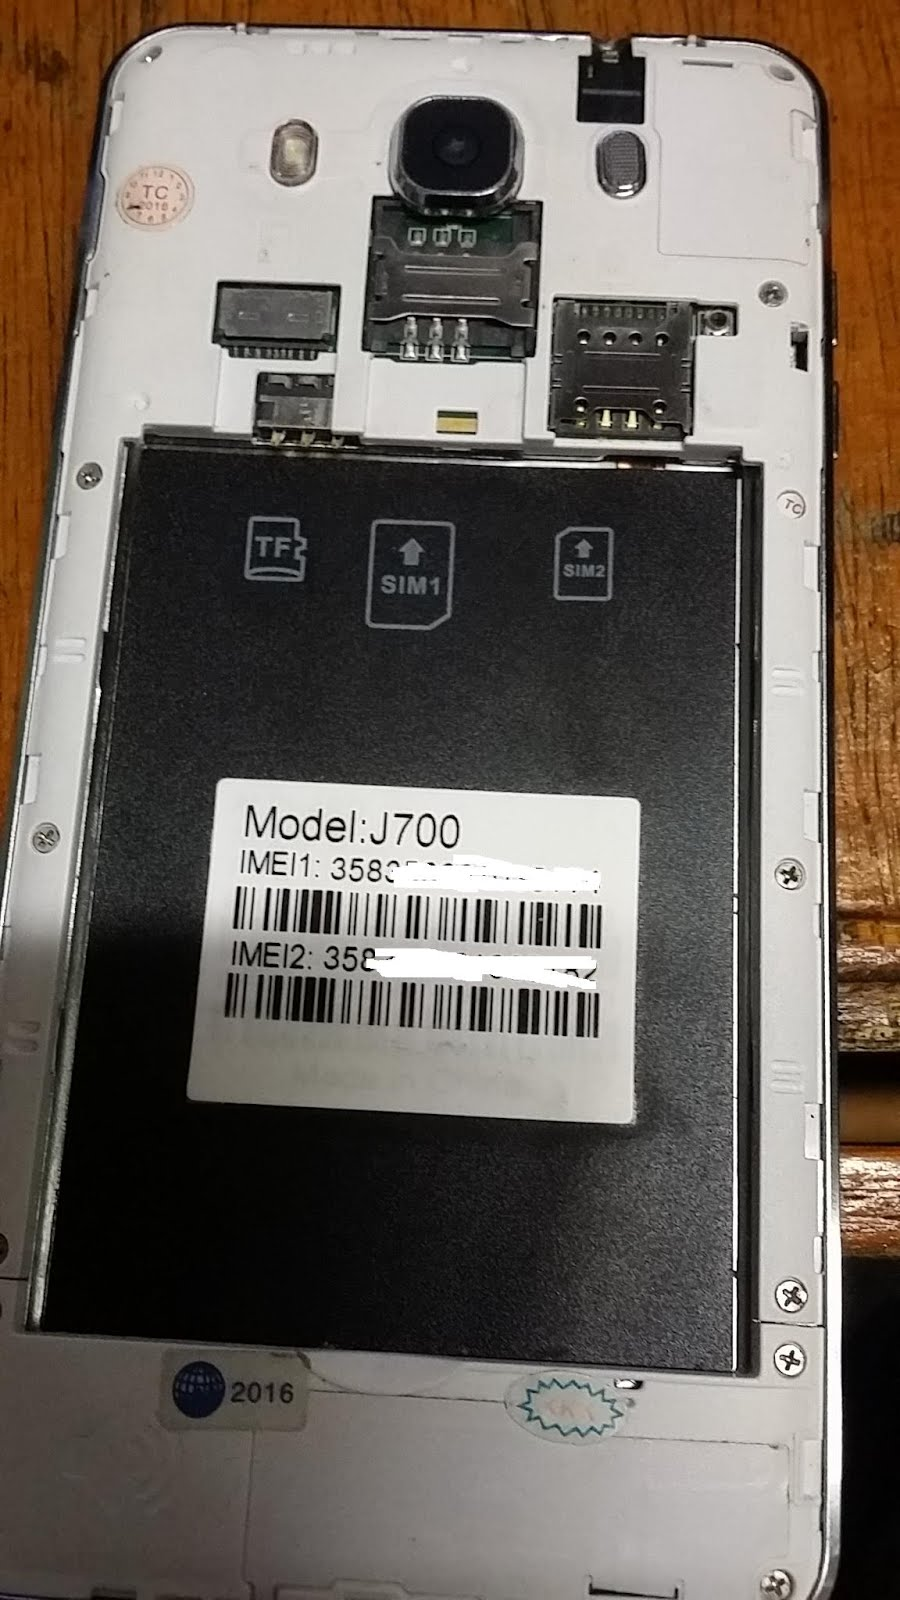 Mobile Info: Android Firmware